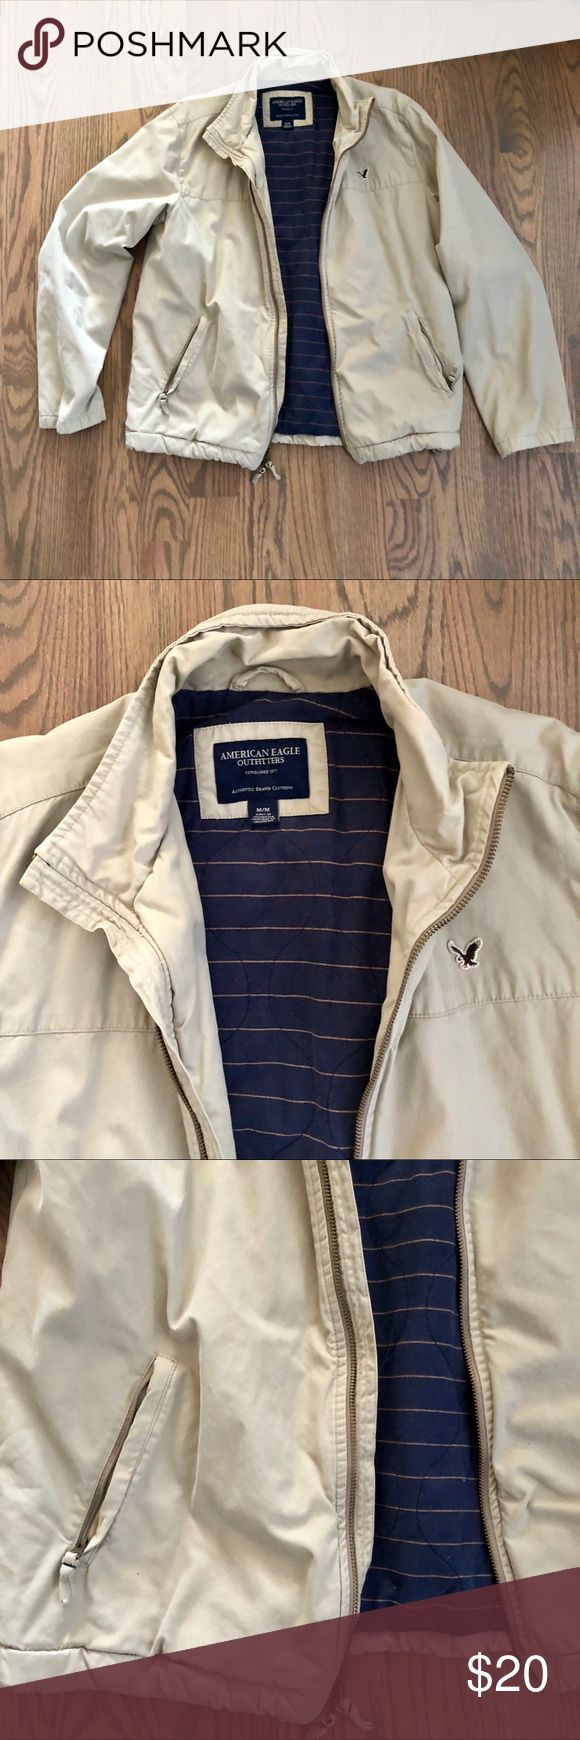 American Eagle Outfitters Jacket American Eagle Outfitters Jacket American Eagle Outfitters Jackets & Coats